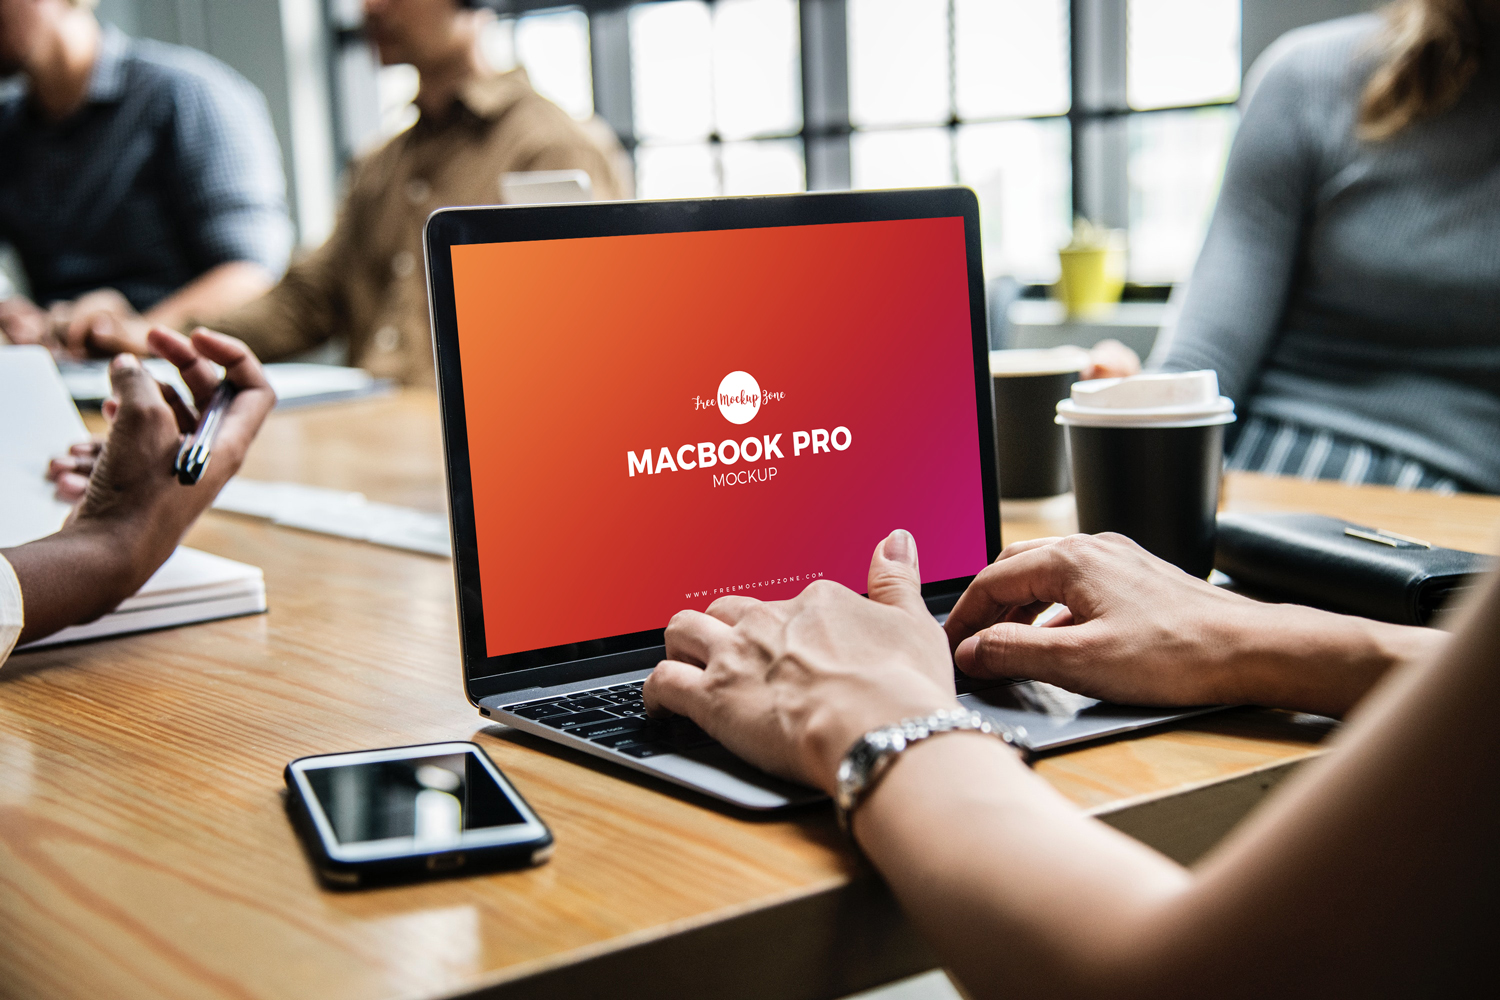 Free-Person-Using-MacBook-Pro-Mockup-PSD-2018